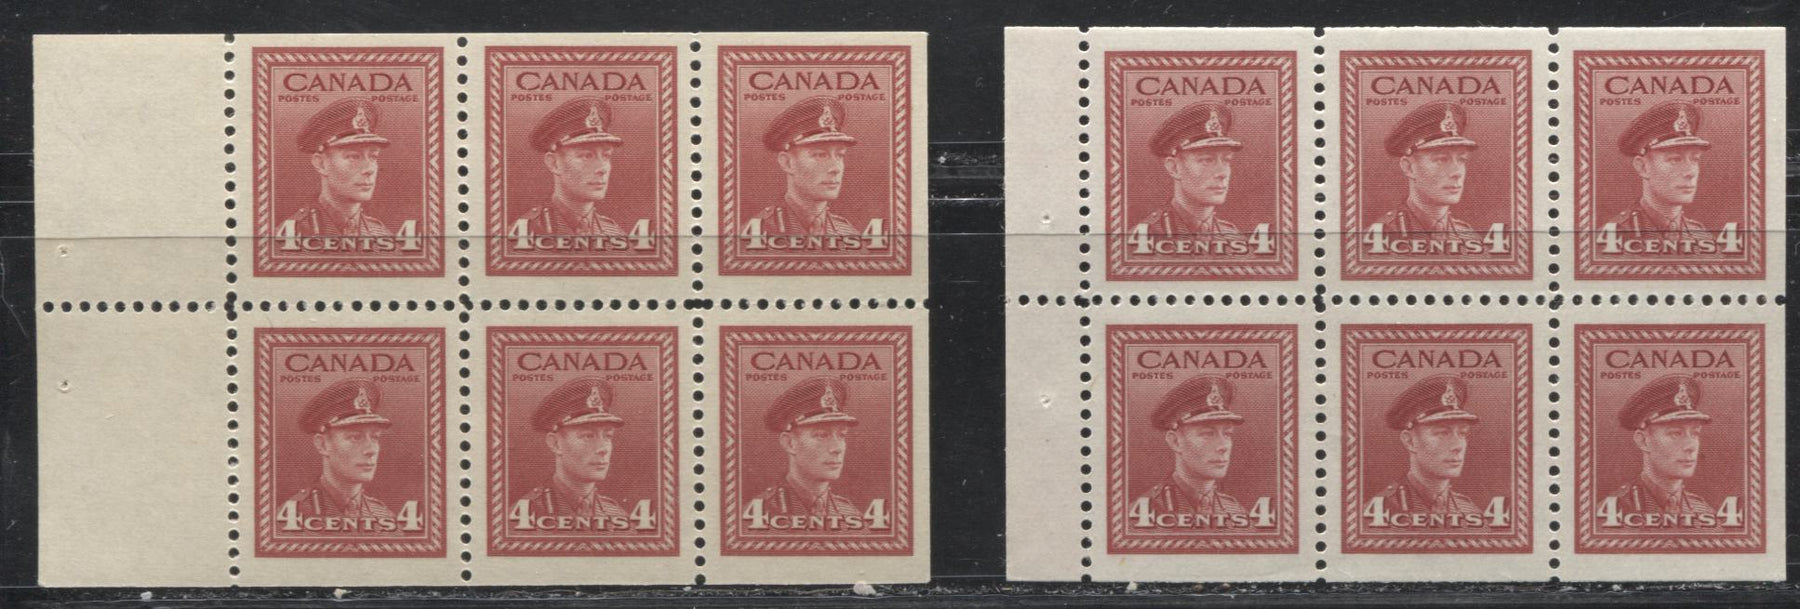 Canada #254a, 254i 4c Carmine Red King George VI 1942-49 War Issue, 2 Different Booklet Panes, All VFNH